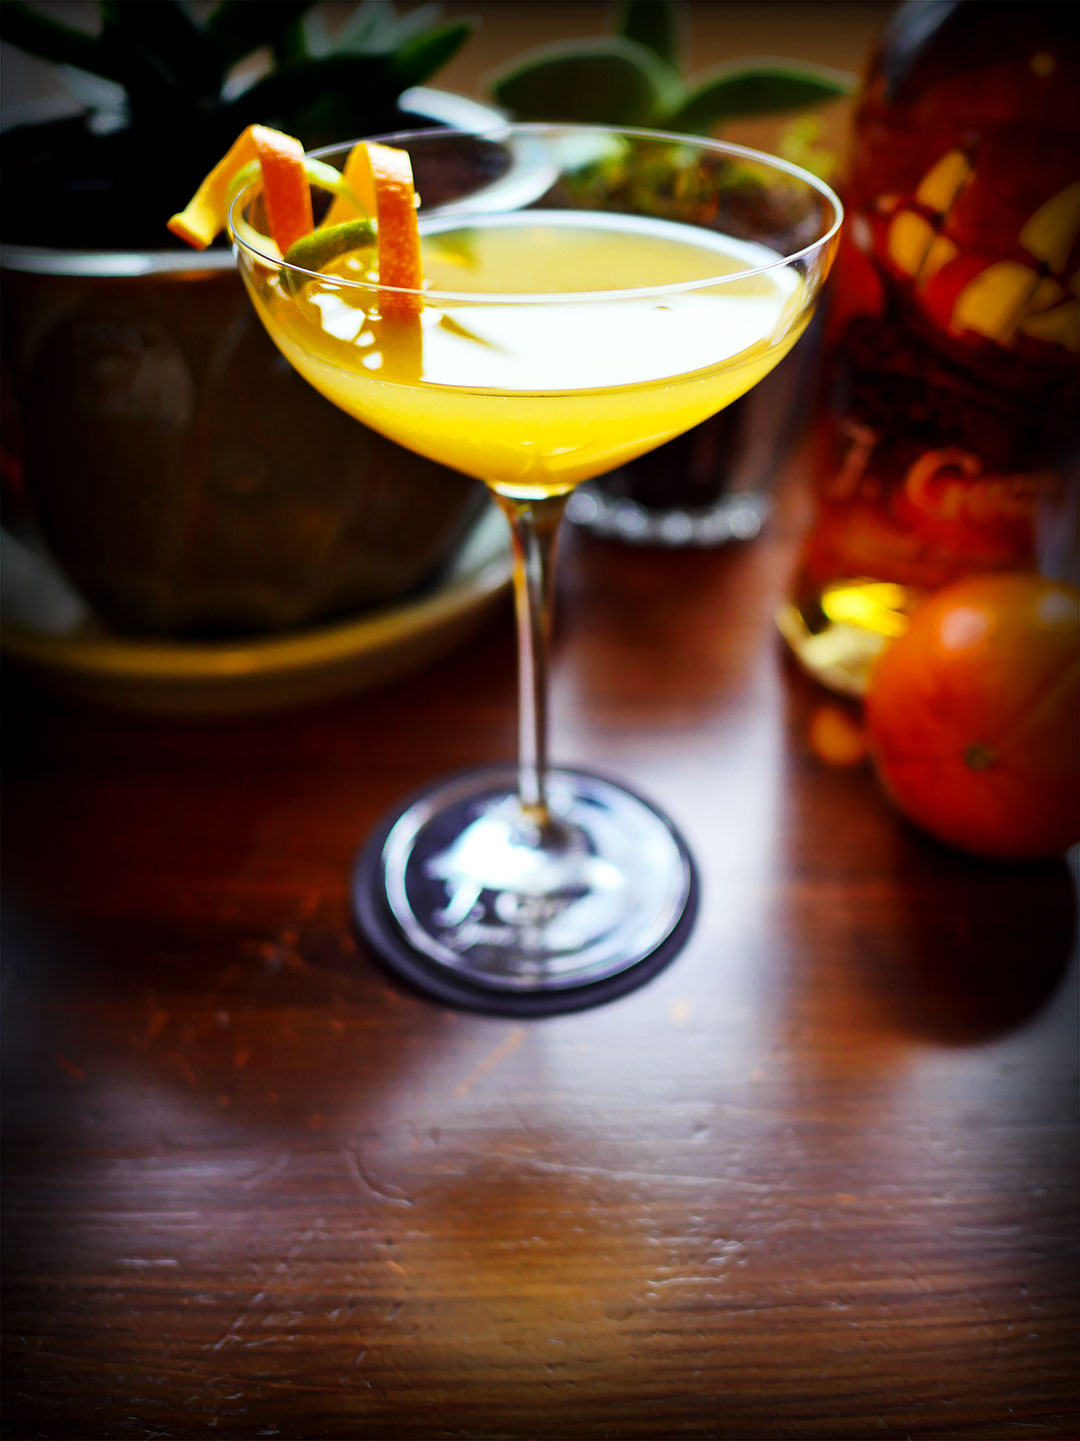 J Gow Spiced Rum Orange Daiquiri